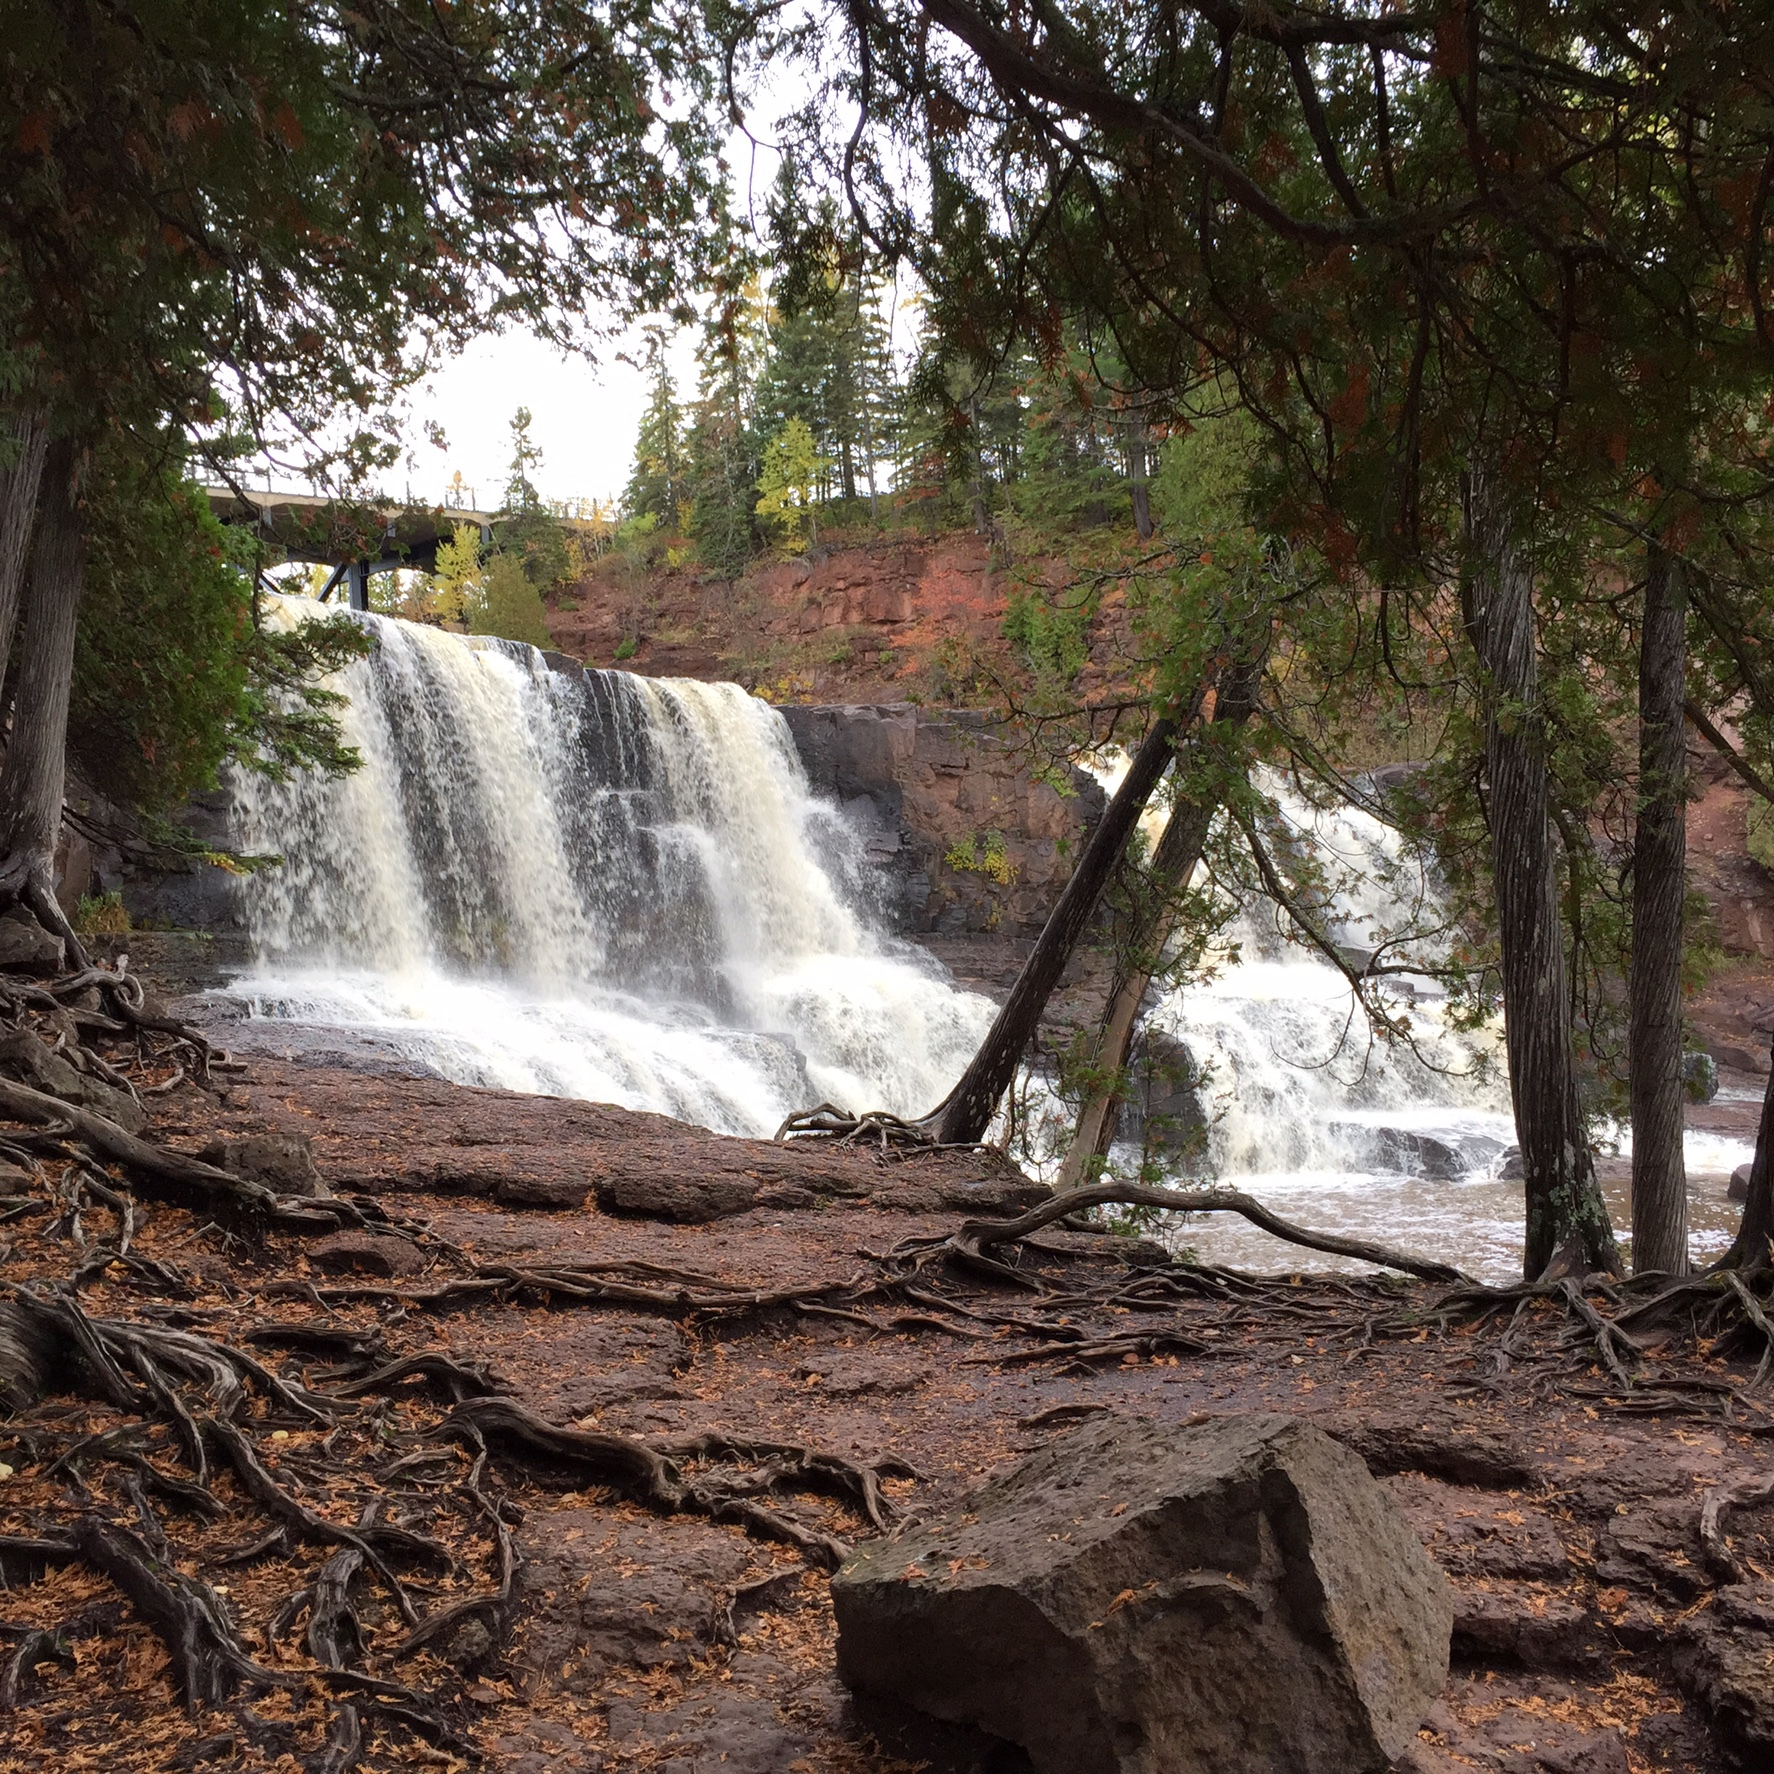 Minnesota State Park Series - Gooseberry Falls State Park